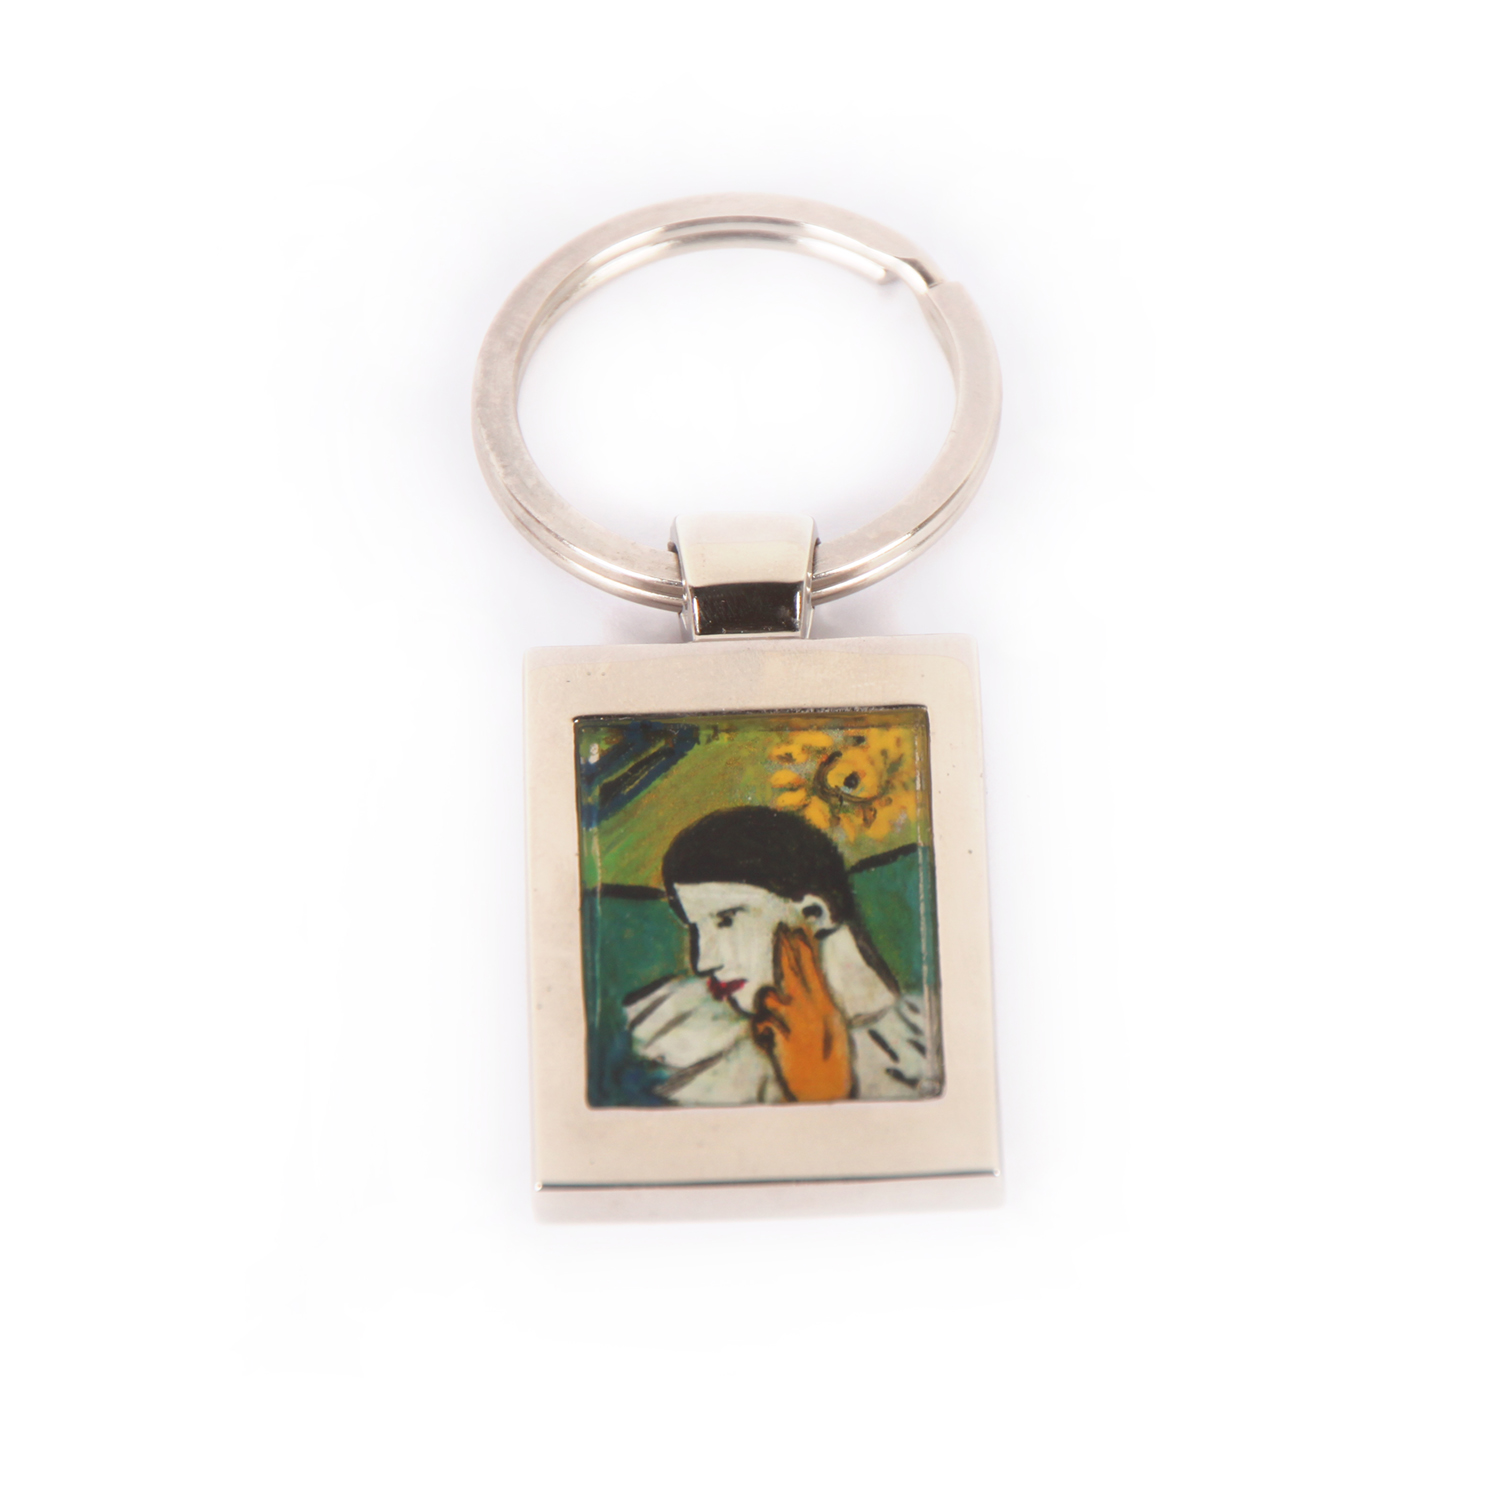 Hand painted keychain - Harlequin by Picasso